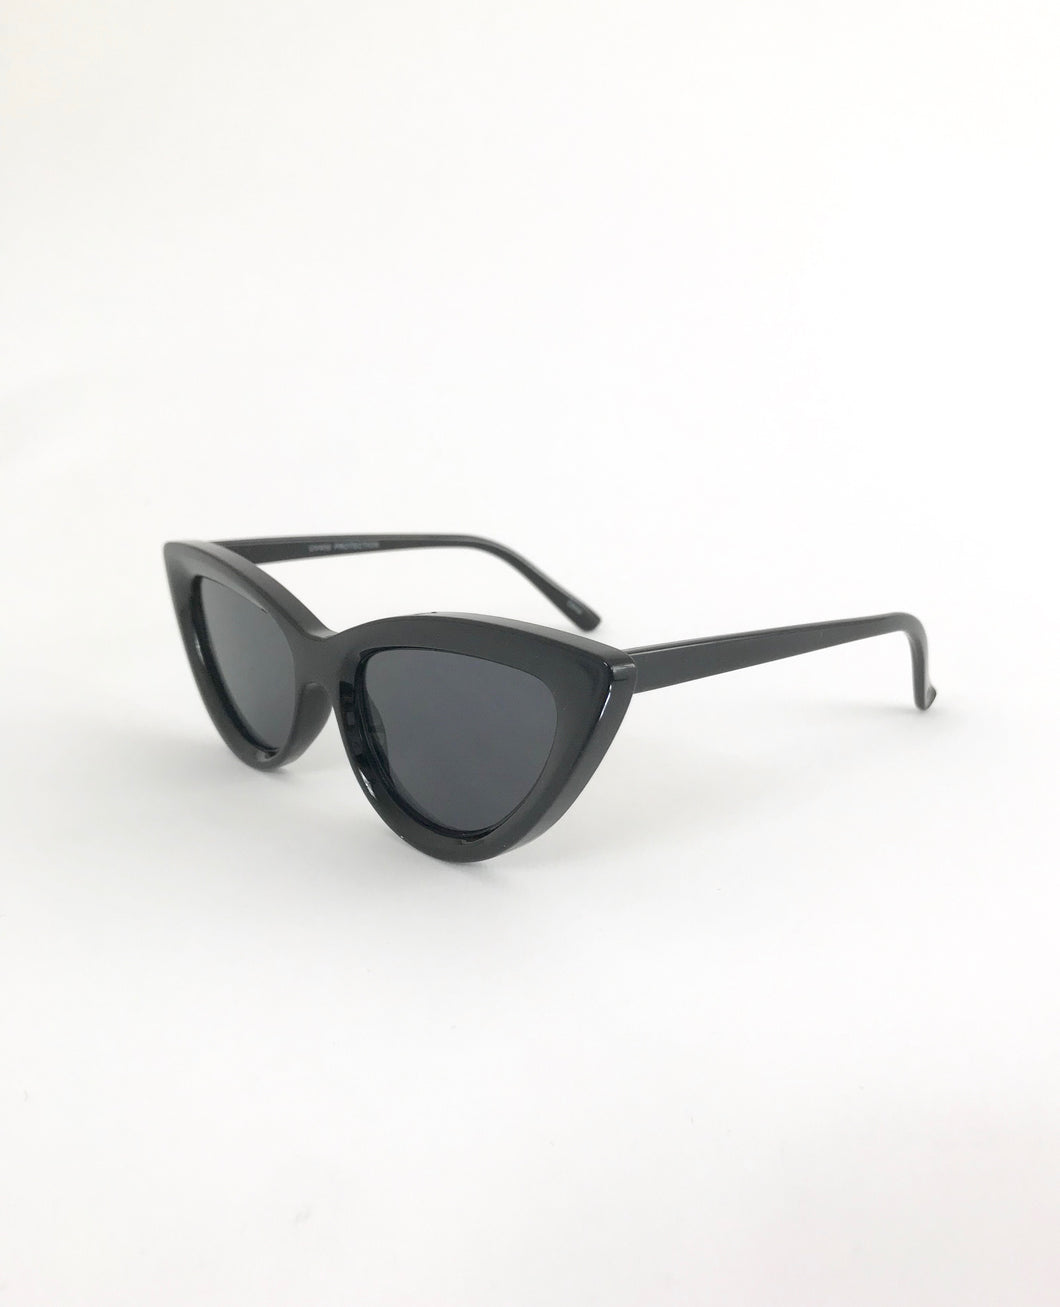 Plastic Cateye Sunglasses